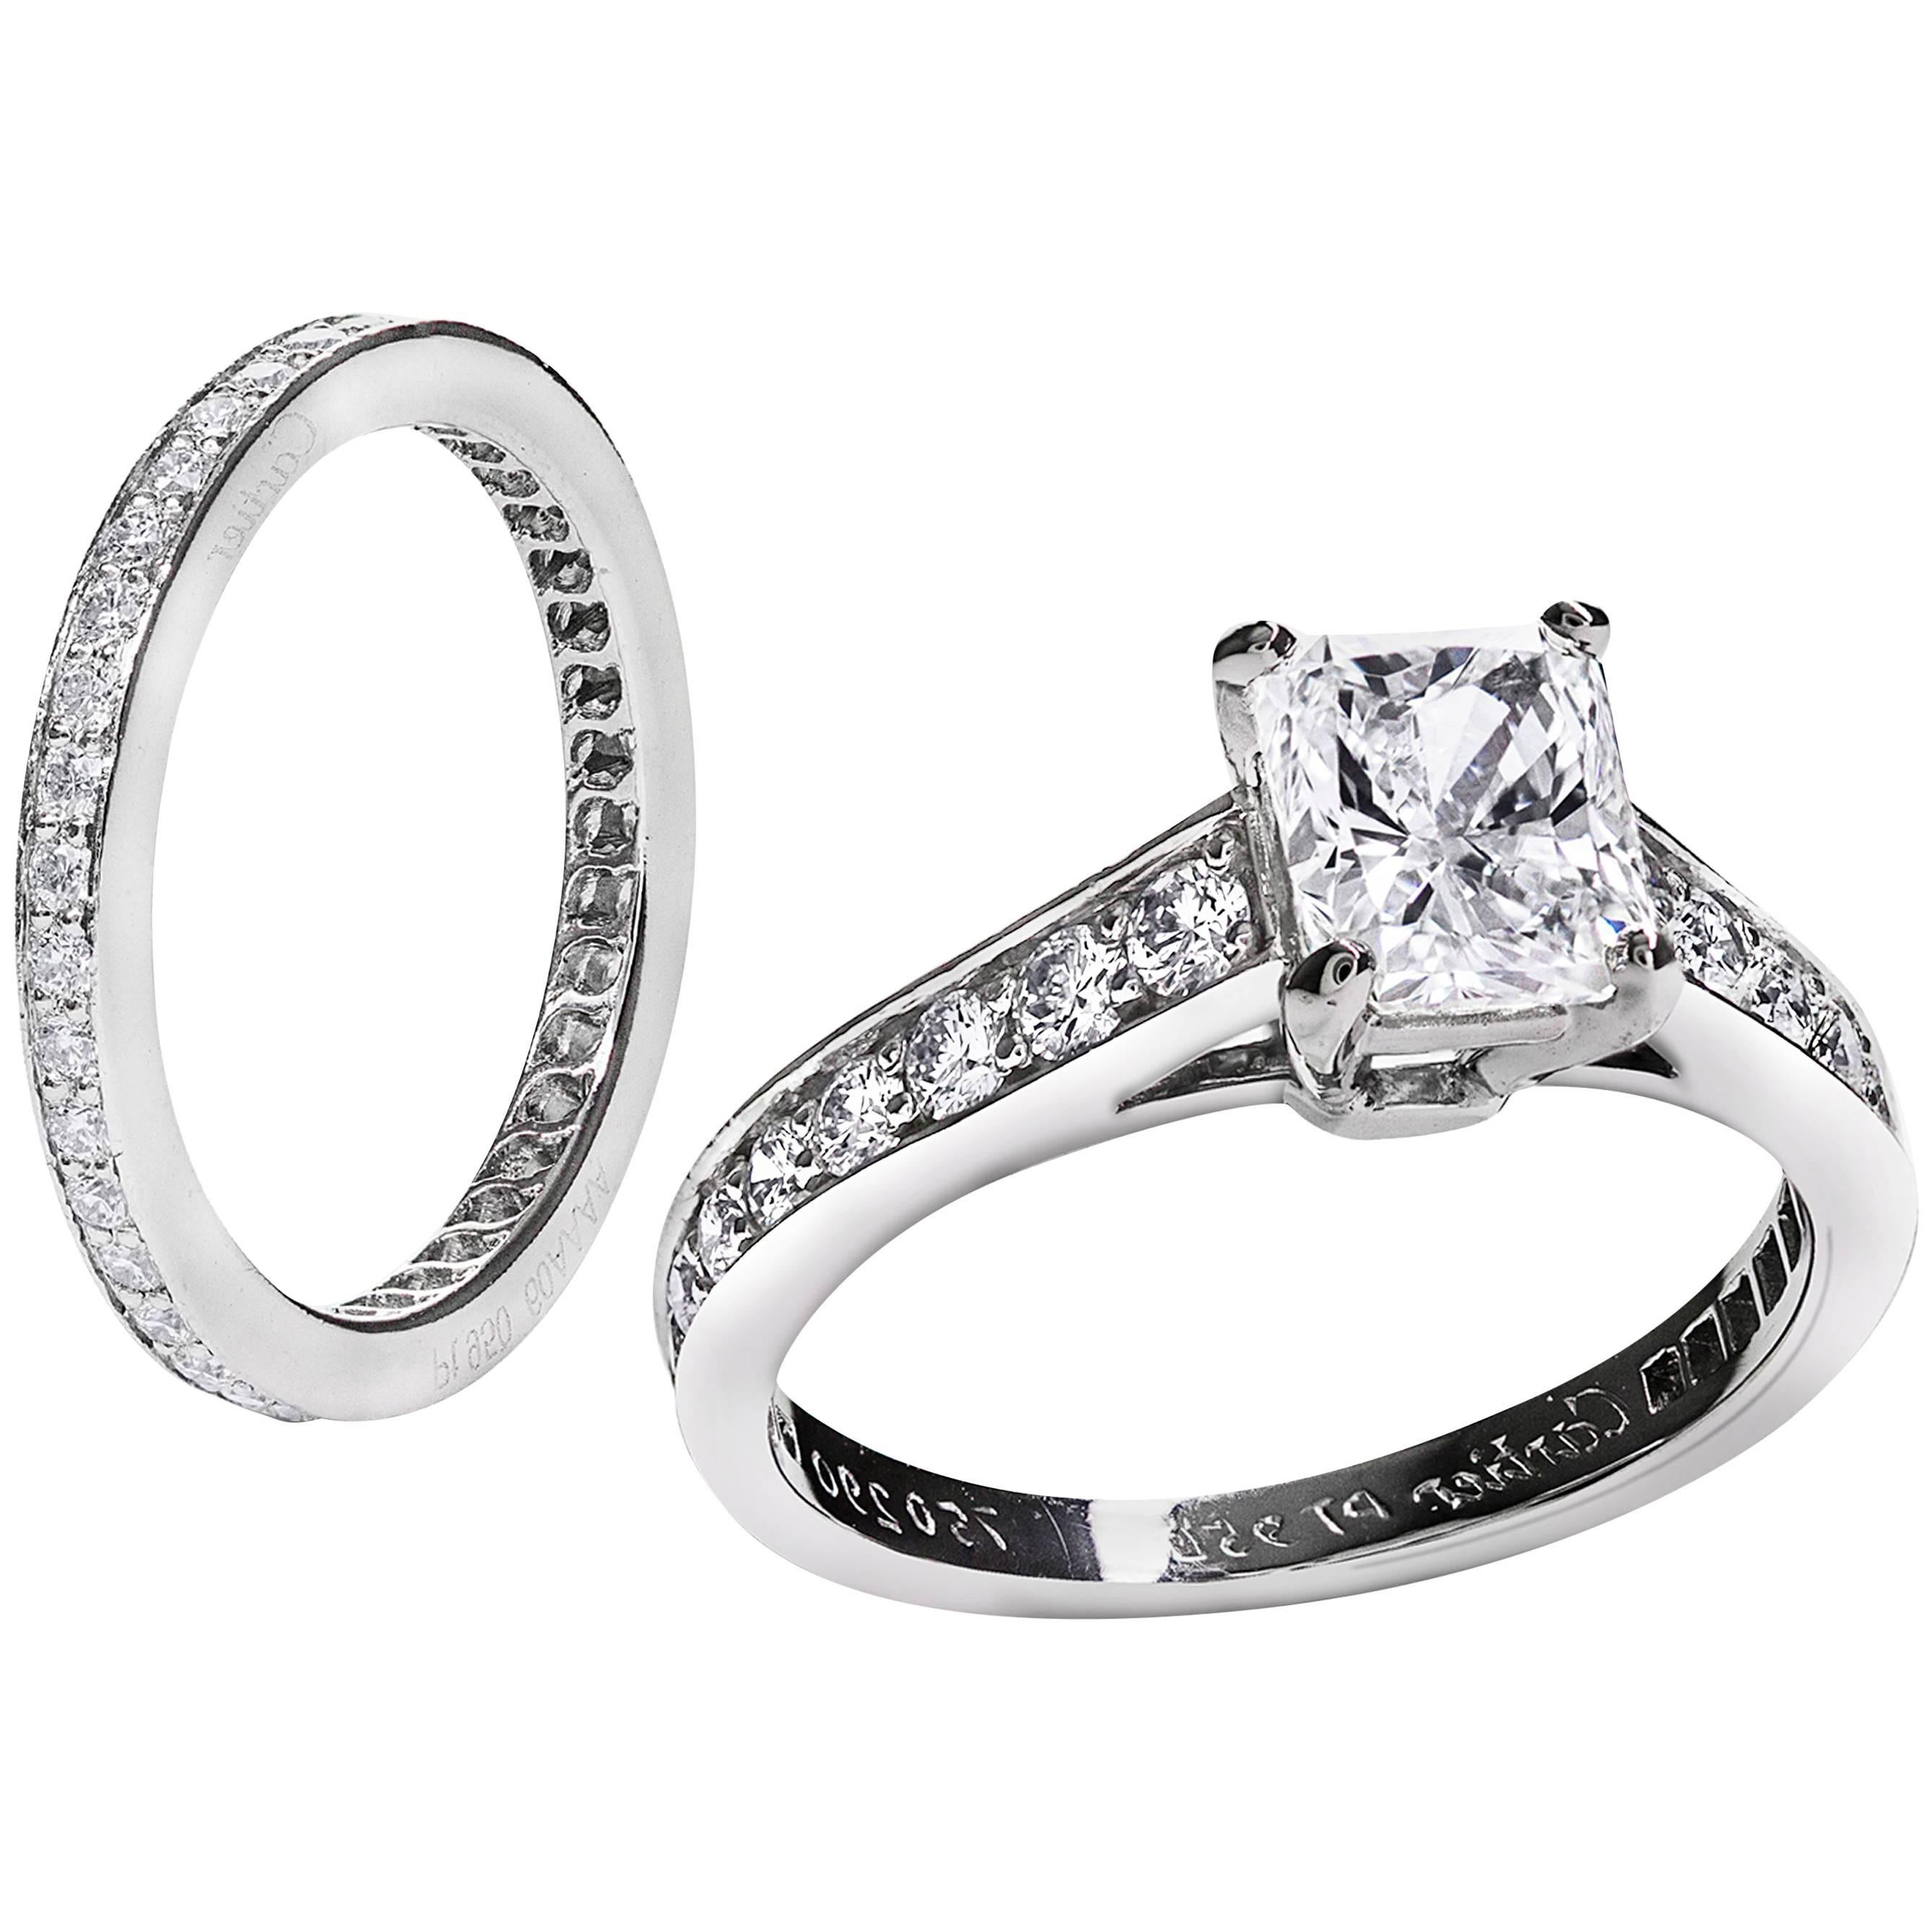 Cartier Wedding Rings 21 For Sale at 1stdibs